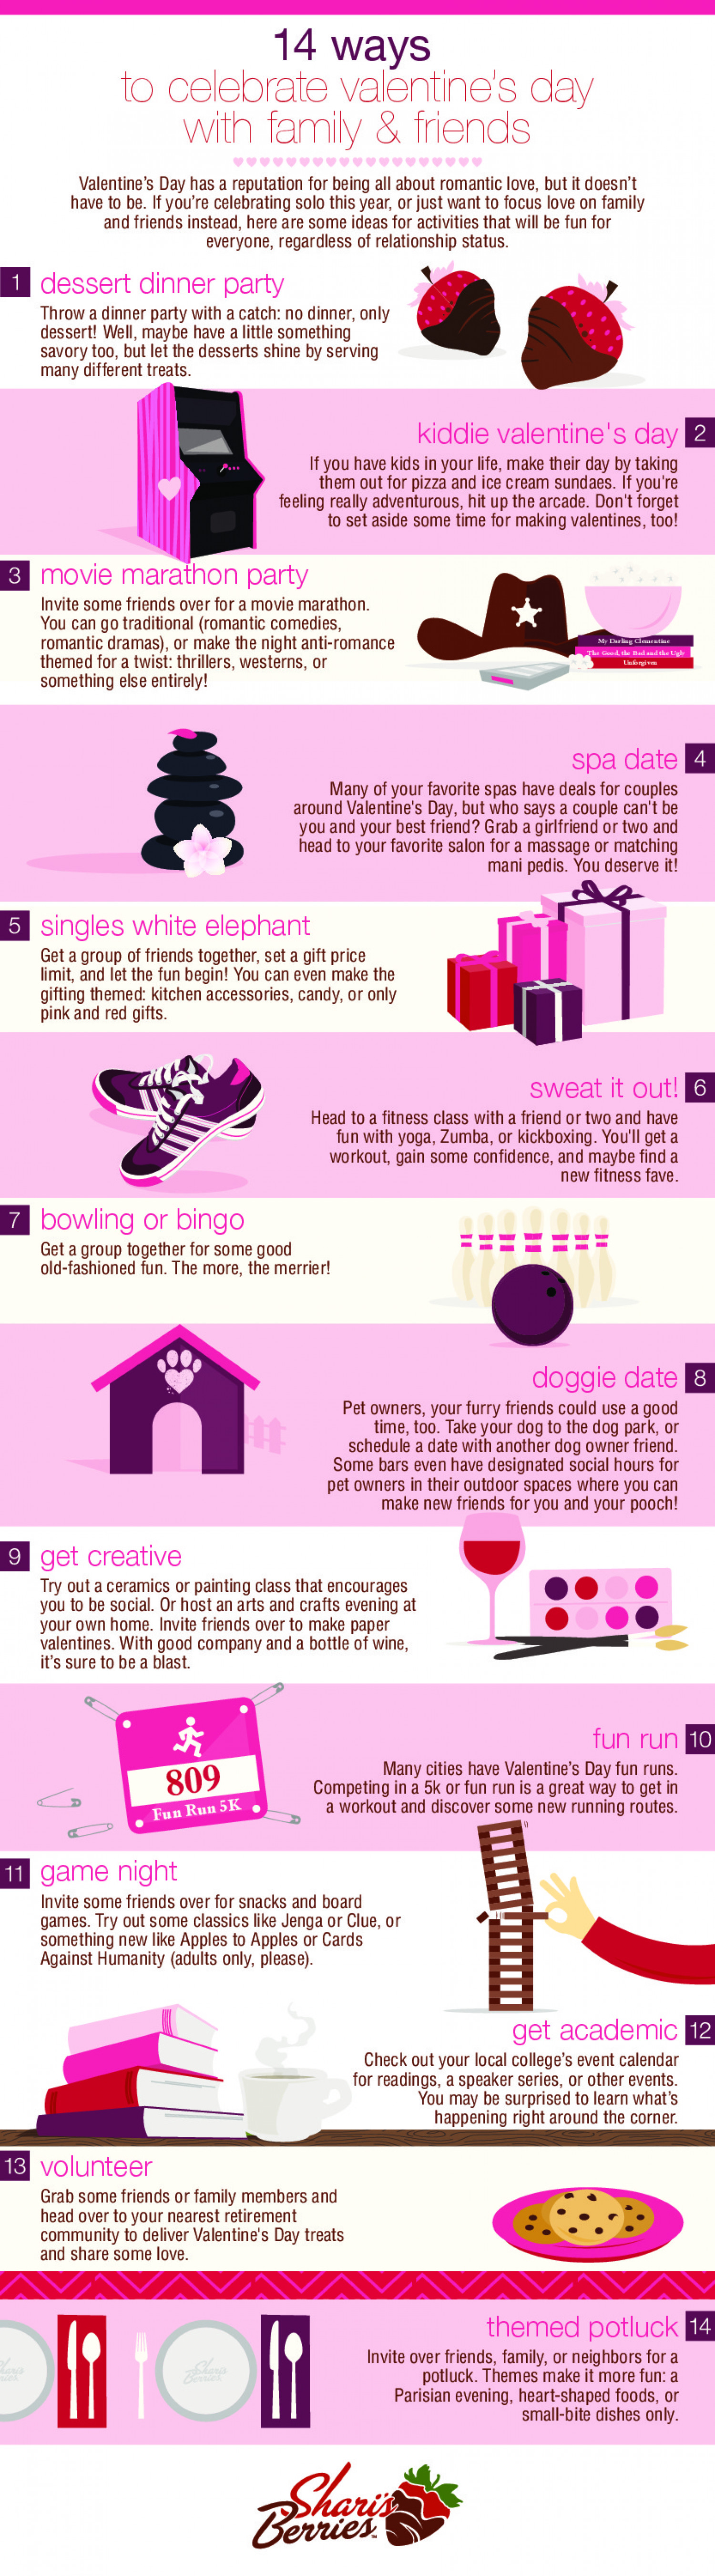 14 Ways to Celebrate Valentine's Day with Friends and Family Infographic